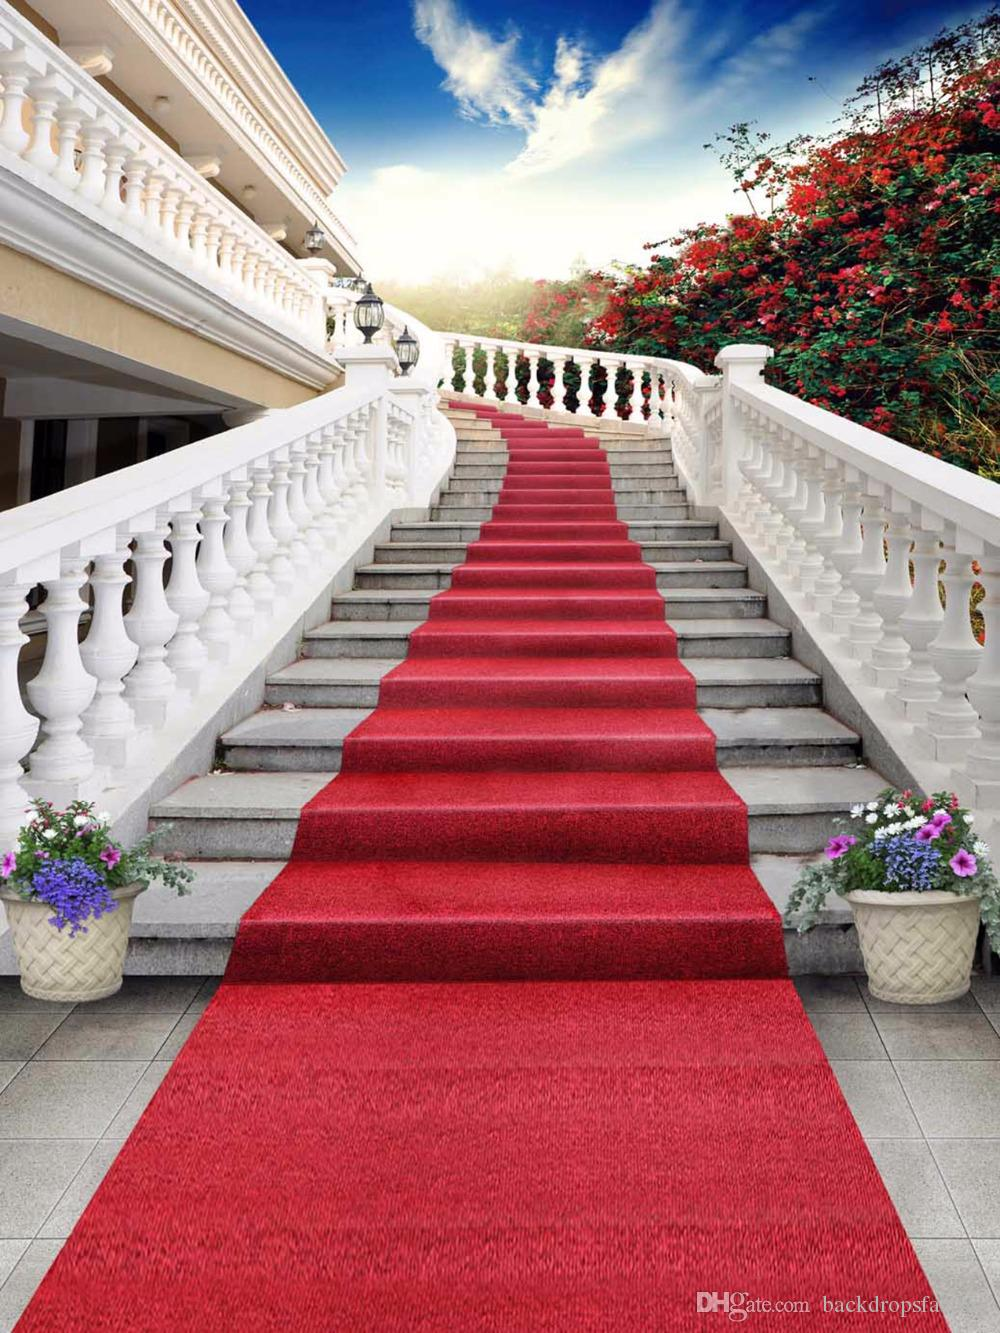 2018 Outdoor Staircase Wedding Backdrops Red Carpet Blue Sky Red Flowers  Scenic Backdrop Photography Studio Backgrounds Vinyl Cloth From  Backdropsfactory, ...